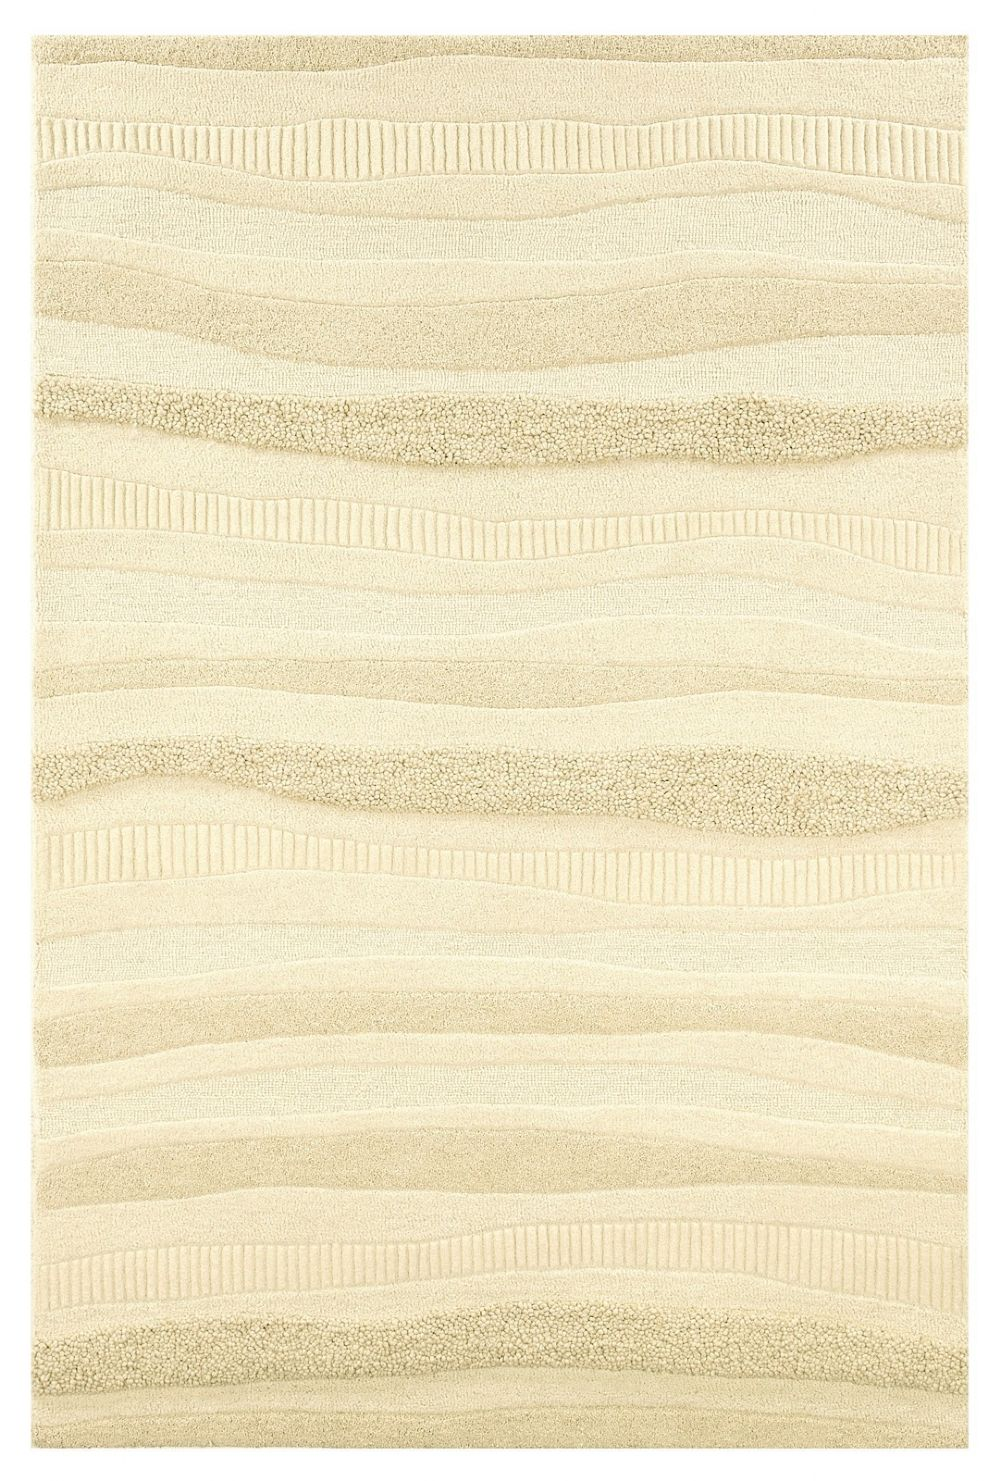 couristan super indo natural contemporary area rug collection